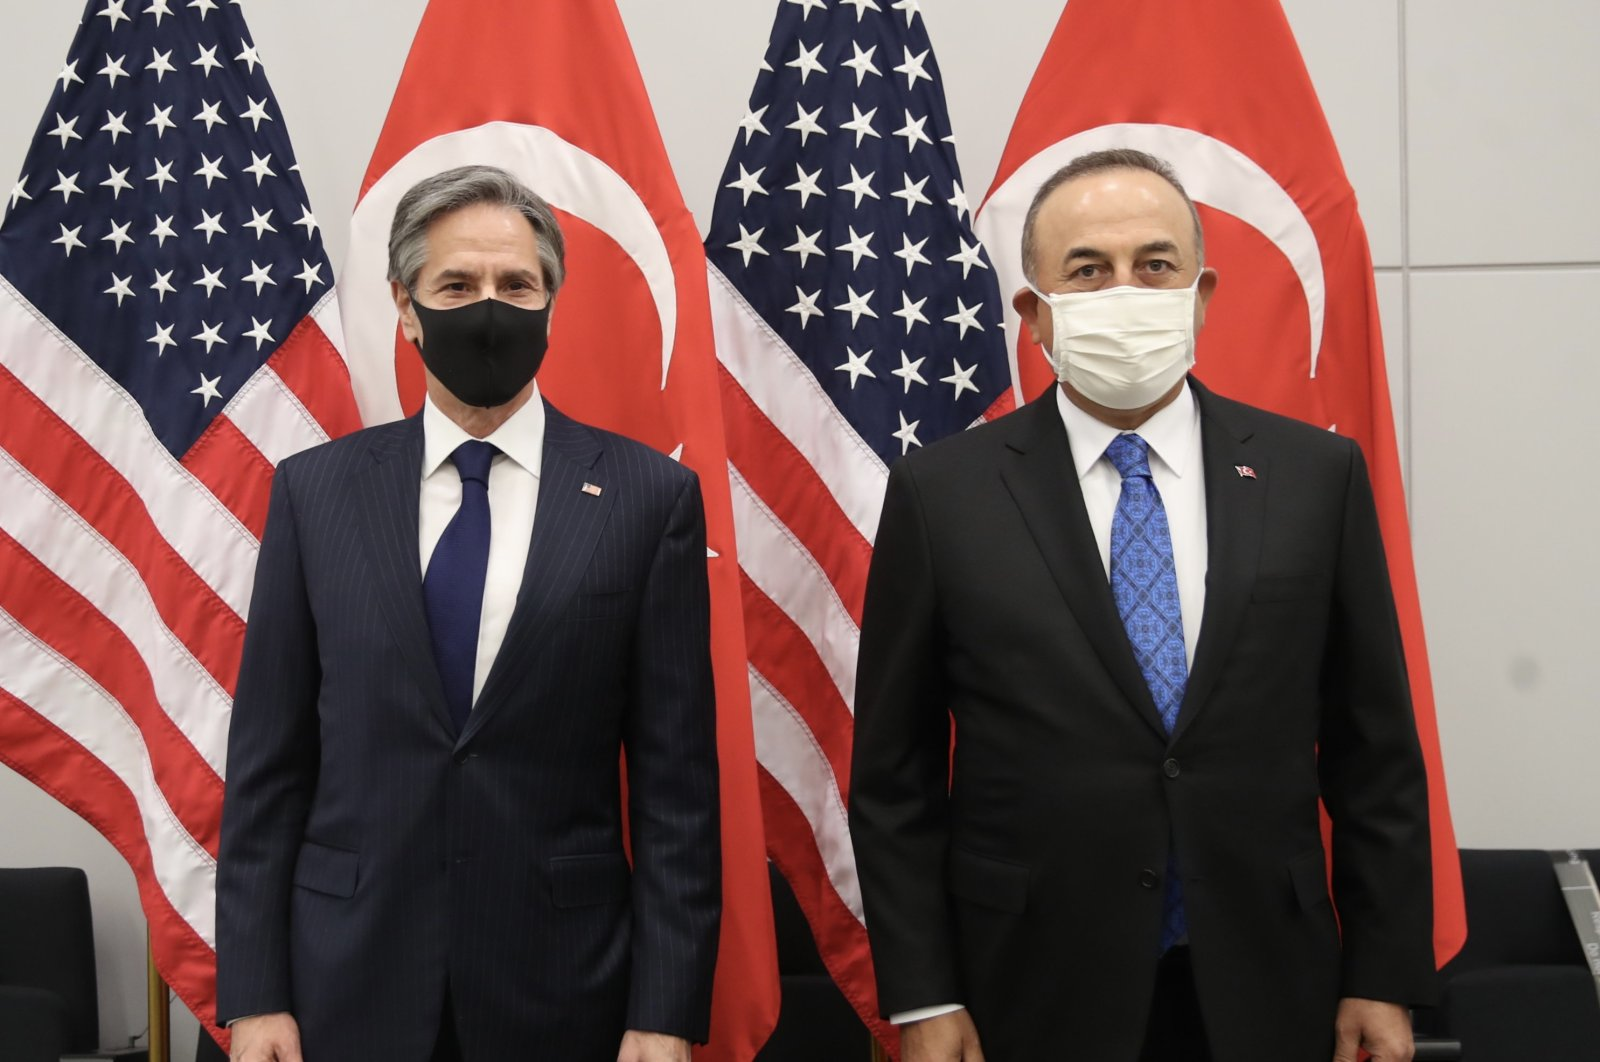 Foreign Minister Mevlüt Çavuşoğlu (R) and his U.S. counterpart Anthony Blinken pose for a photo during a NATO summit in Brussels, Belgium, Mar. 21, 2021. (AA Photo)